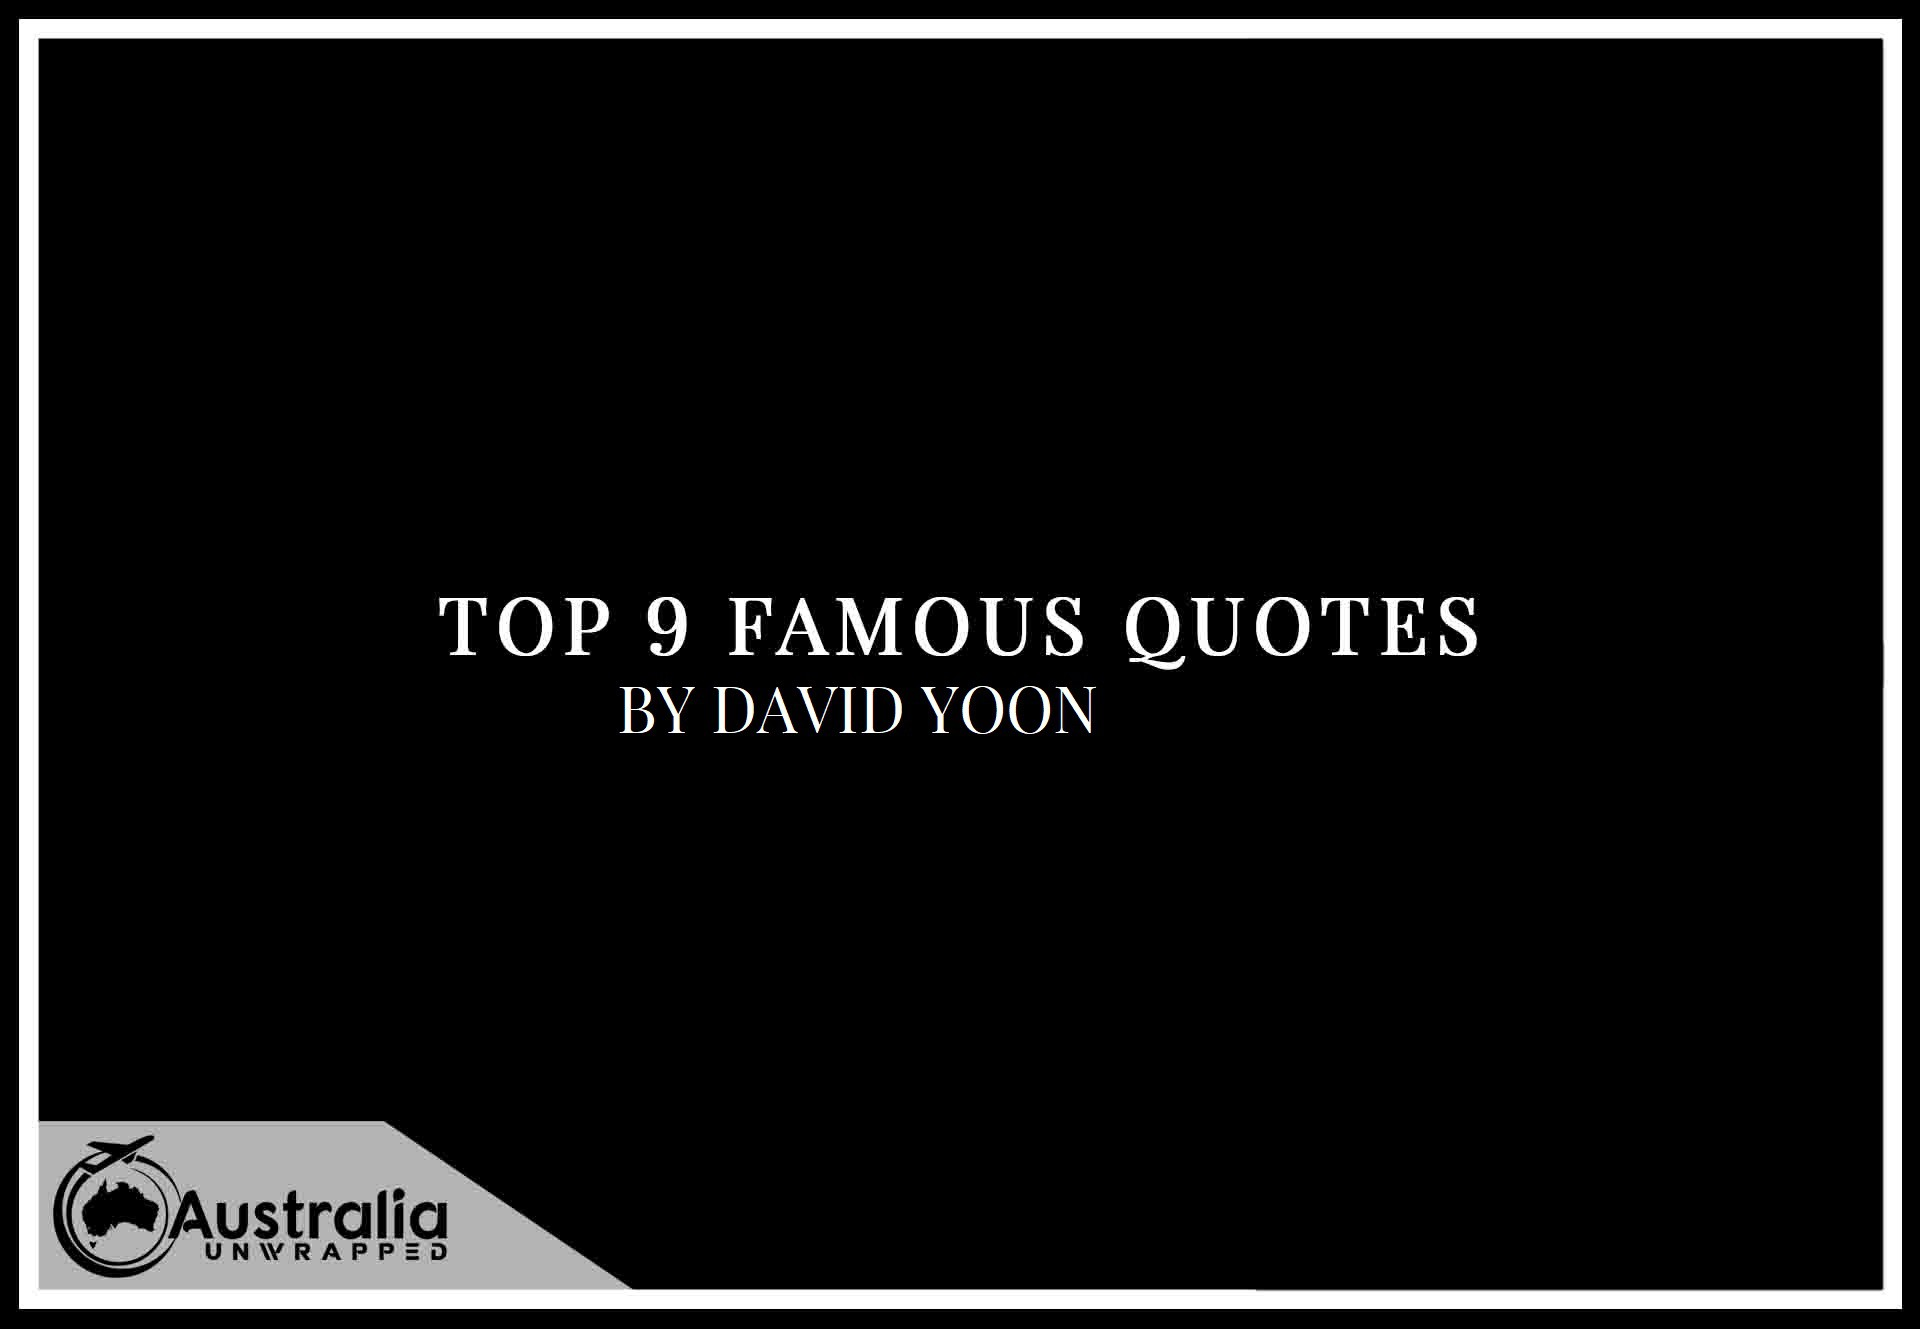 Top 9 Famous Quotes by Author David Yoon